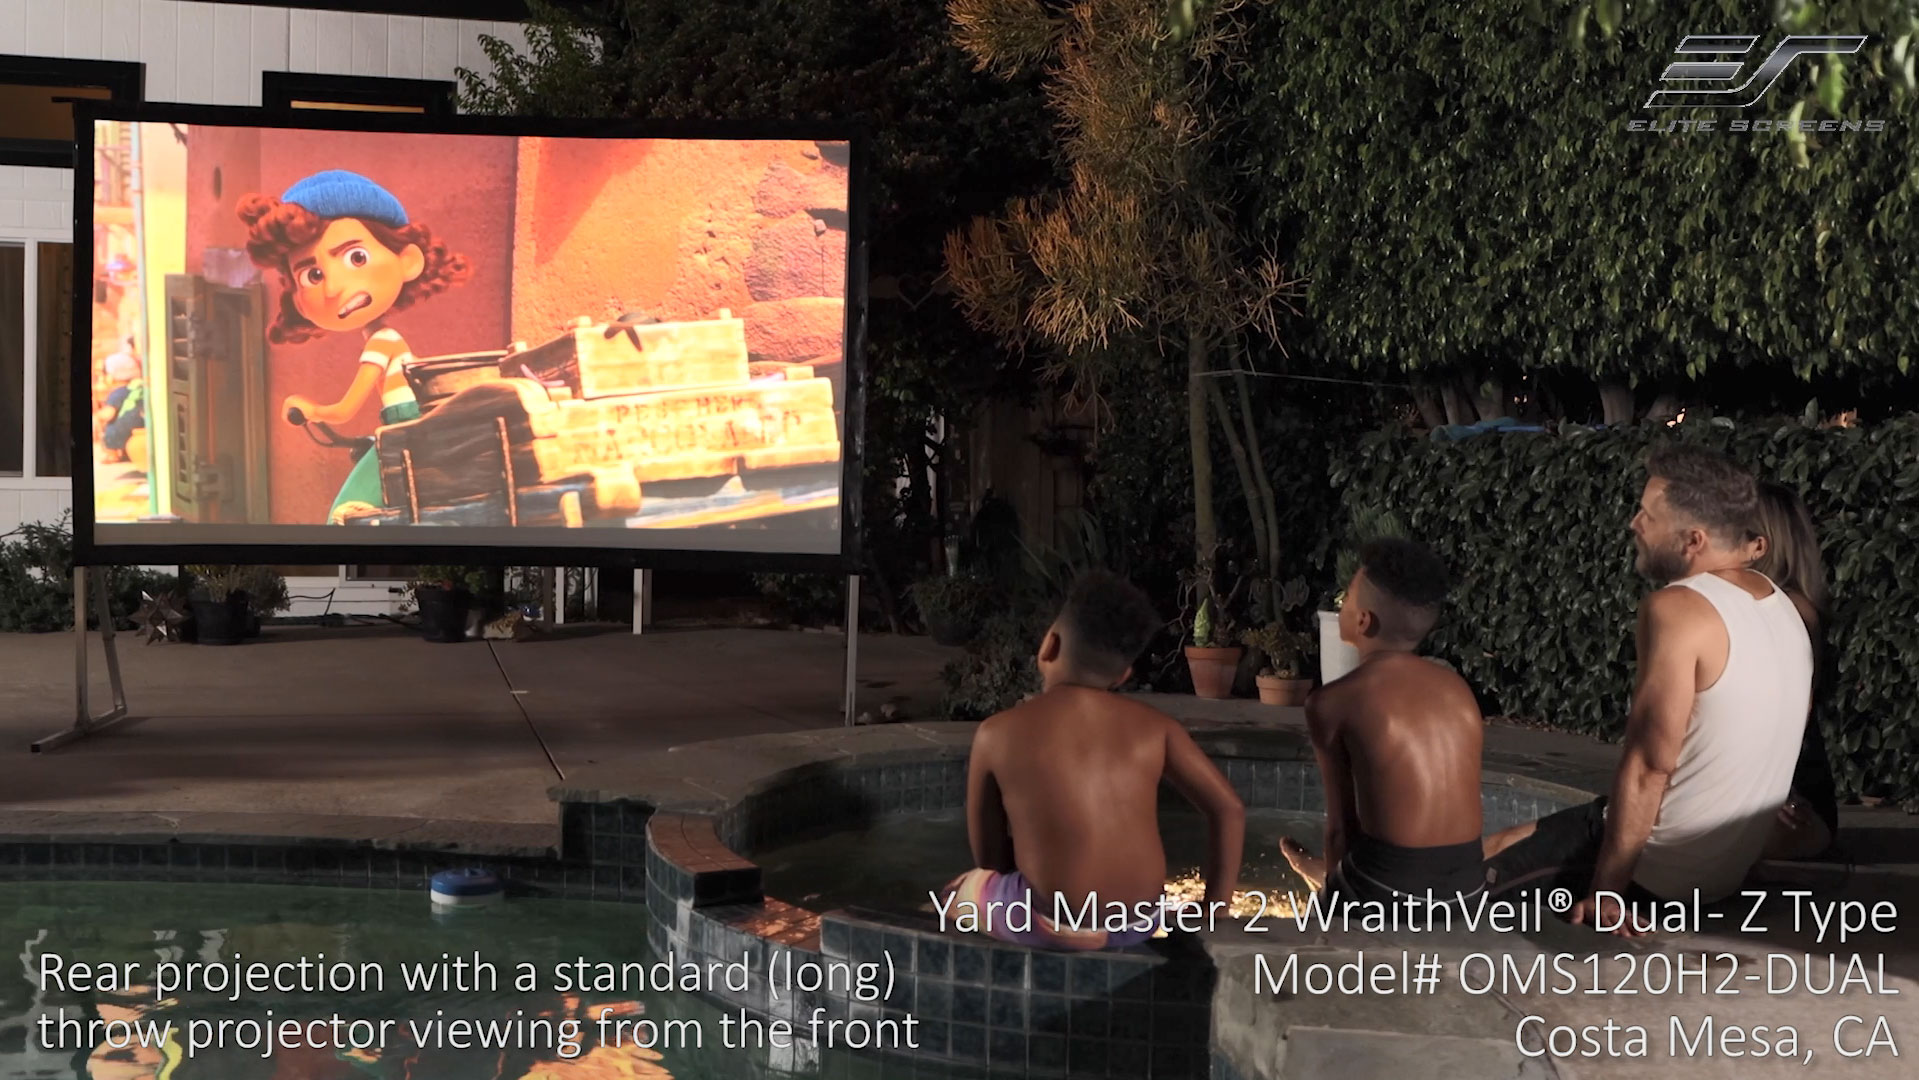 Yard Master 2 WraithVeil® Dual in Costa Mesa, CA | Front and Rear Projector Screen